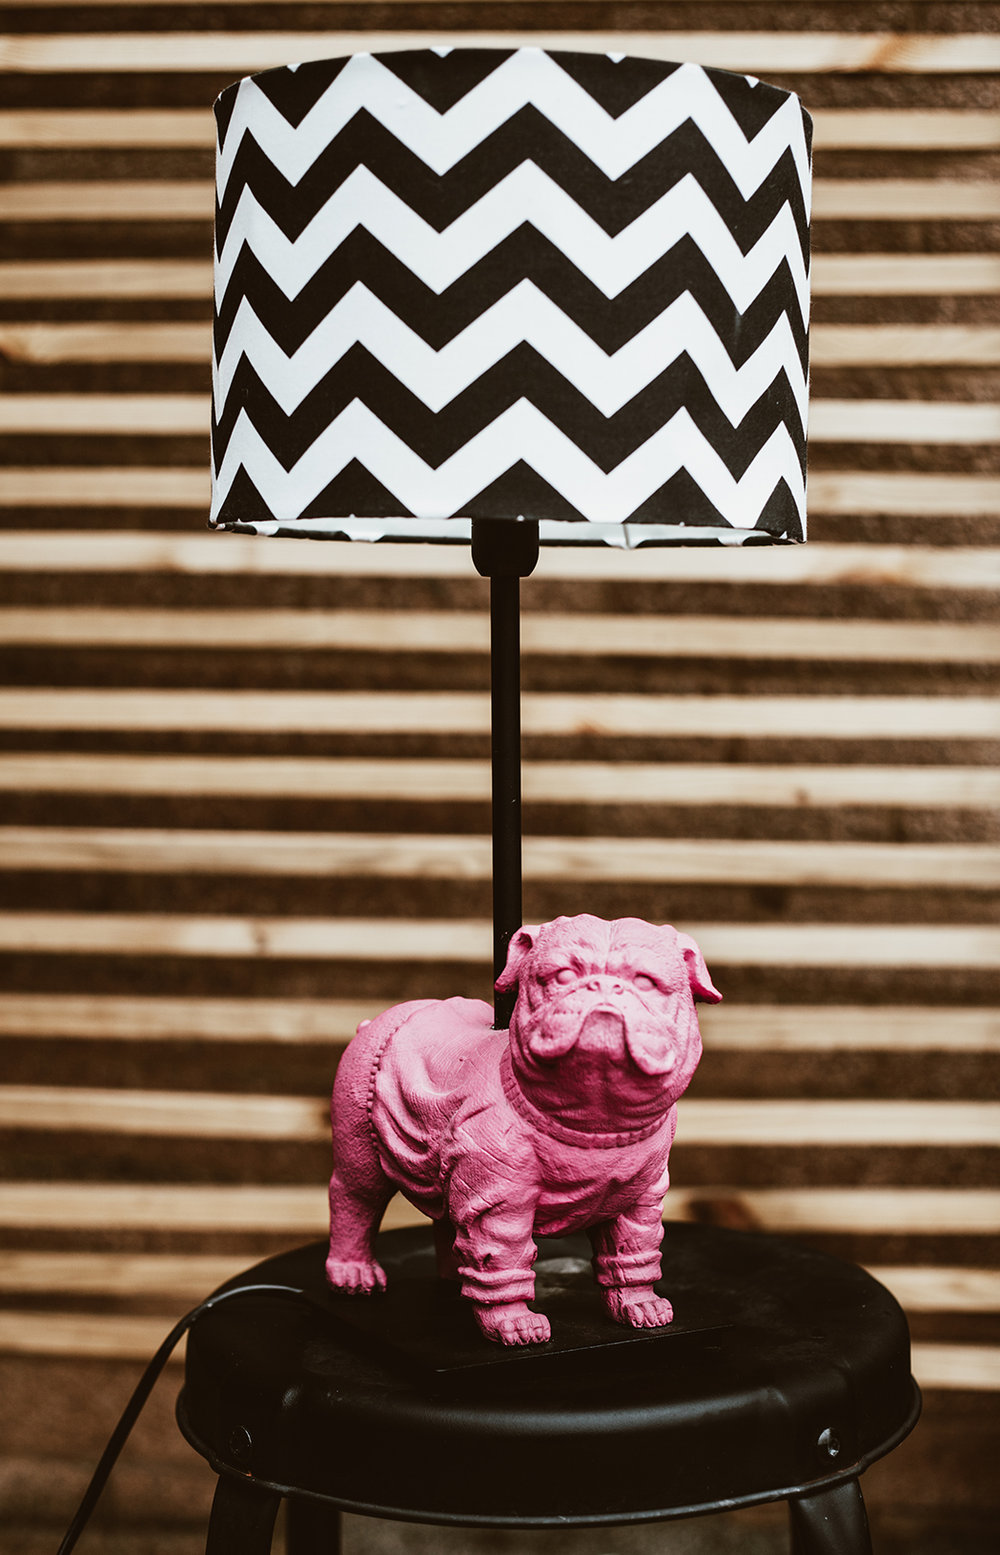 Diy Turn Your Ornament Into A Lamp Using Ikea 5 Lamp Base Style